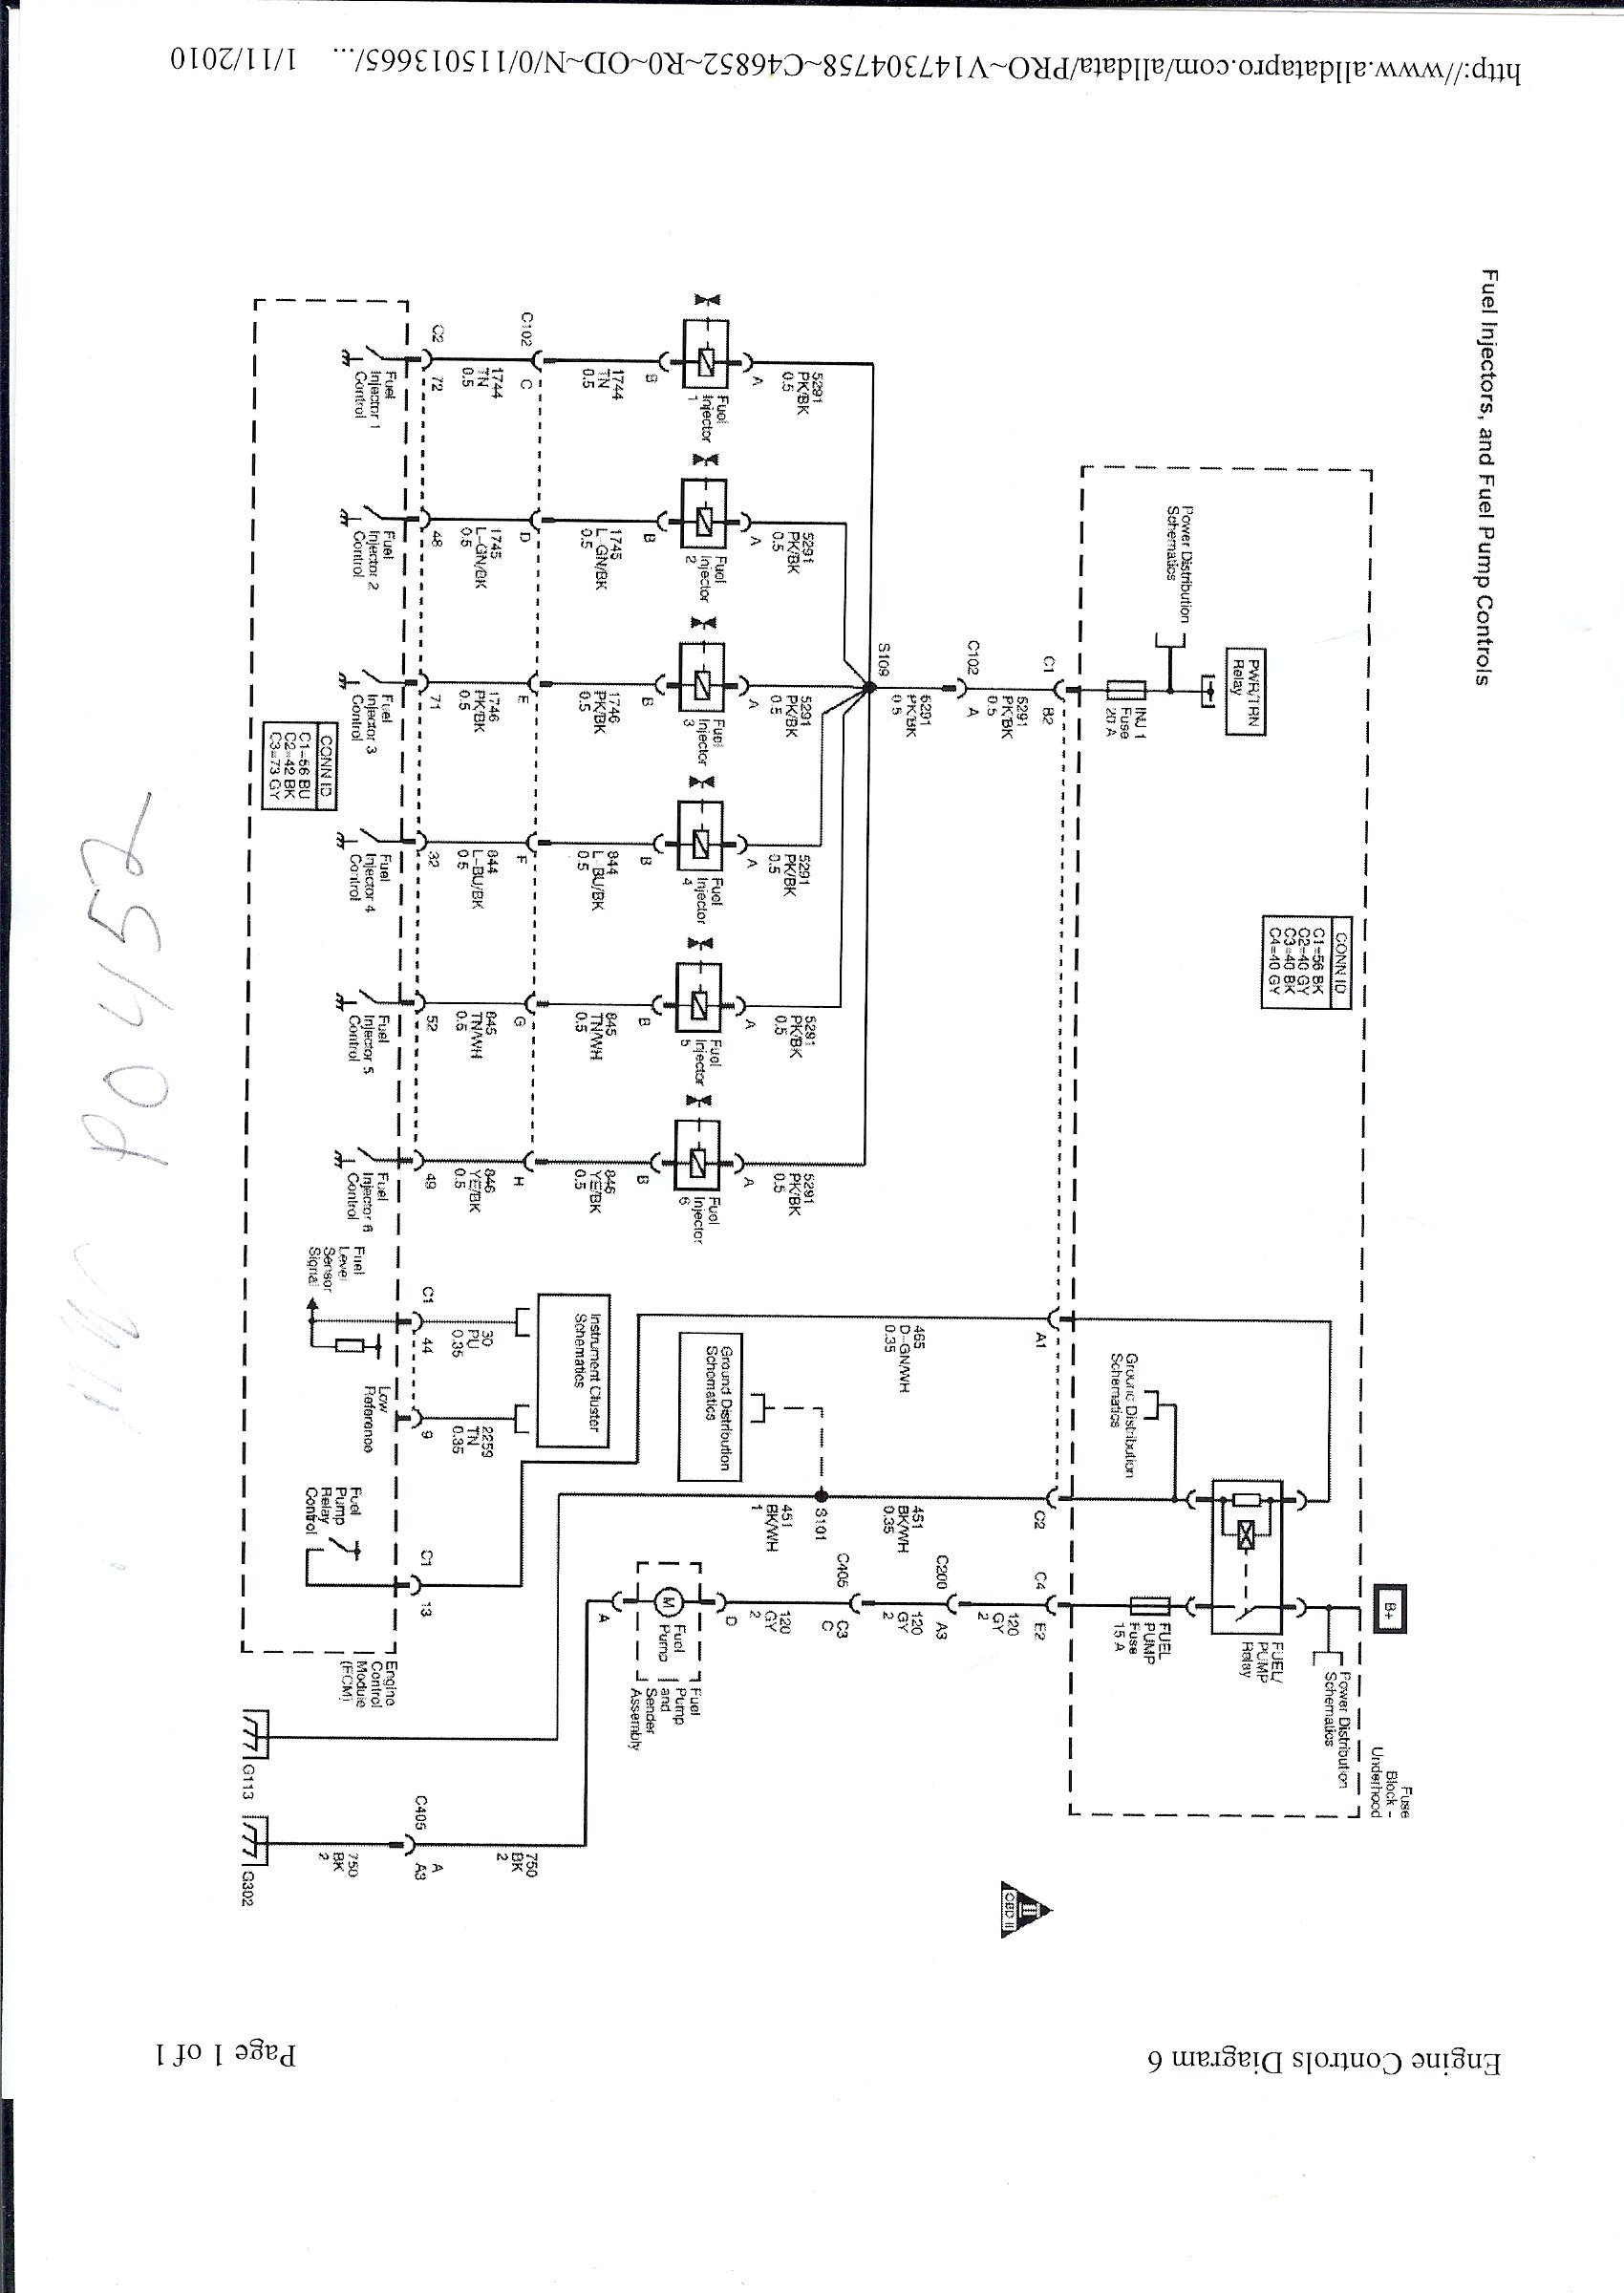 2010 01 13_020441_wiring_diagram 2006 chevy impala fuel pump went out replaced pump still will 04 impala wiring diagrams at bayanpartner.co